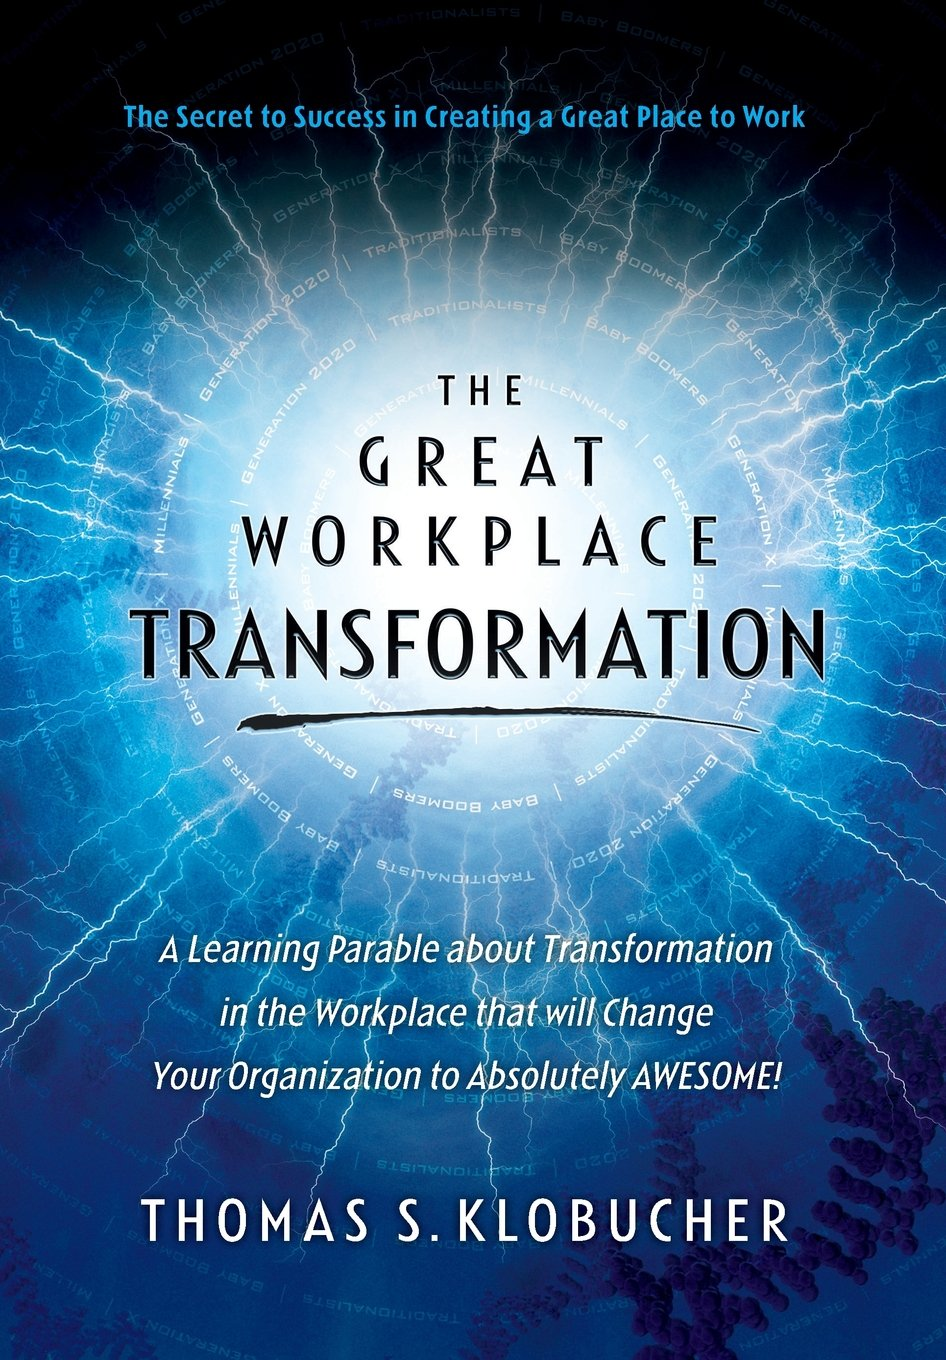 Copy of The Great Workplace Transformation